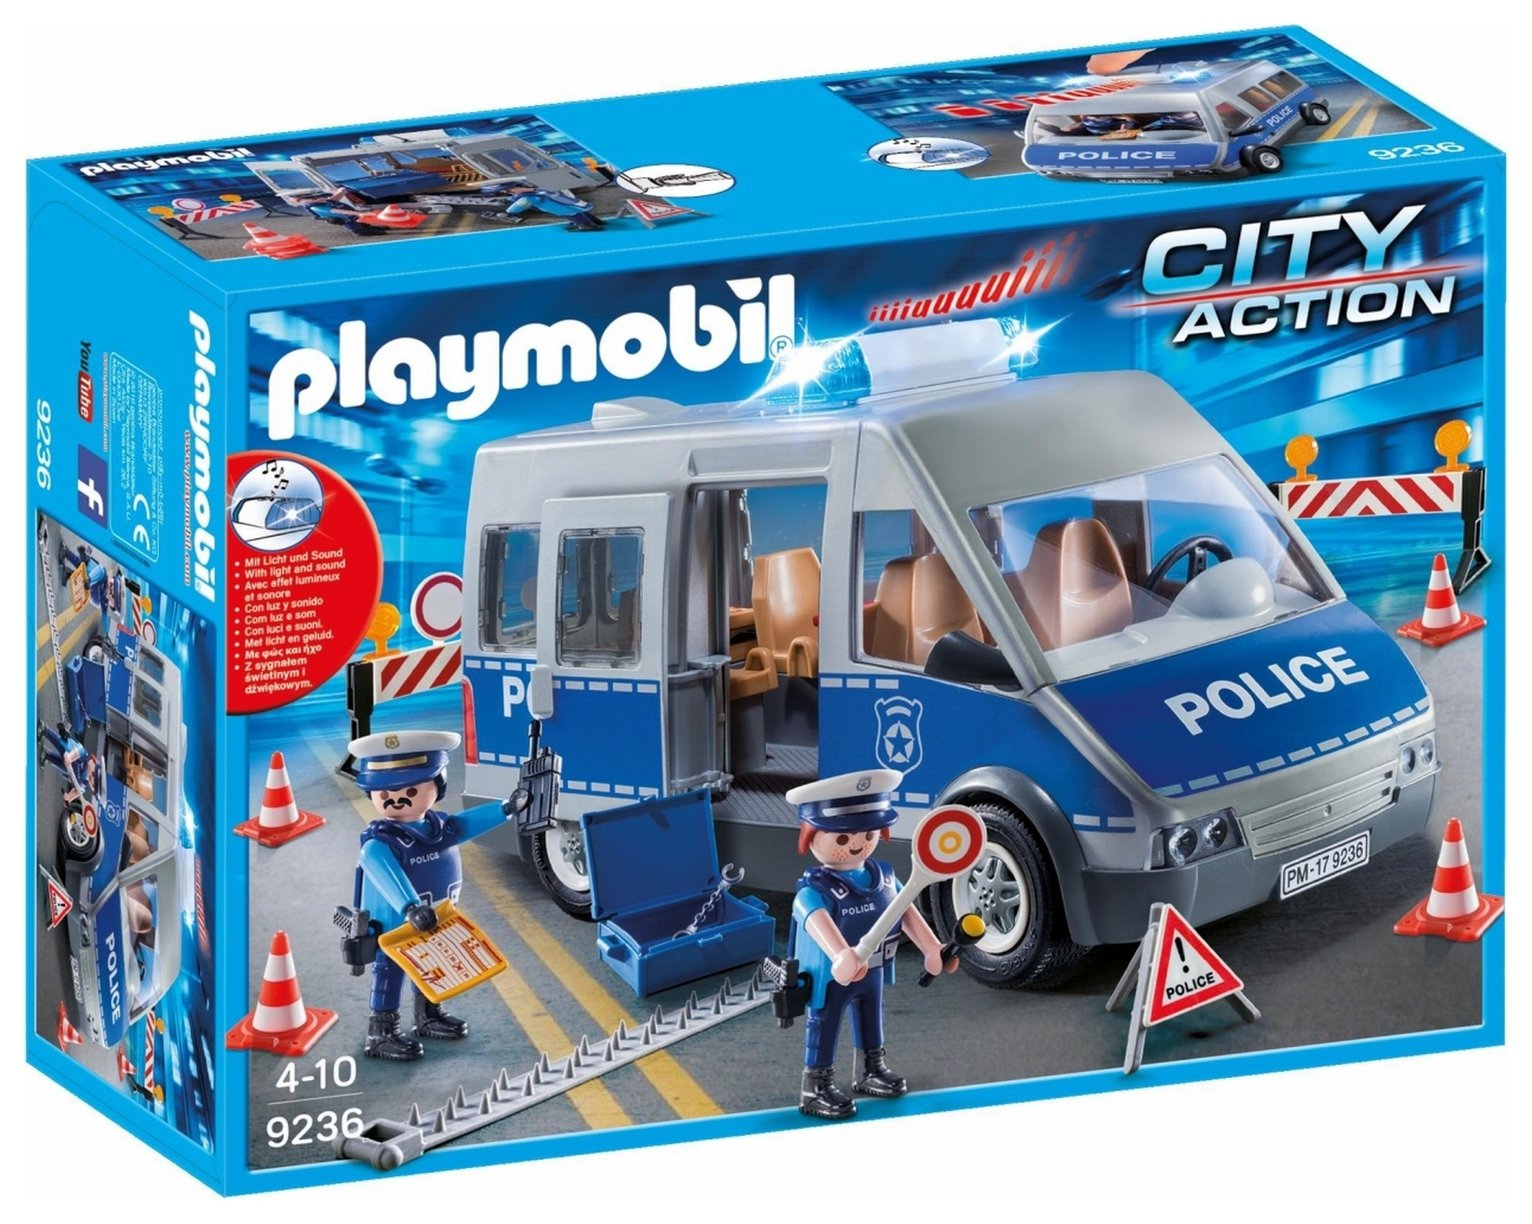 playmobil city action playmobil toys compare the prices. Black Bedroom Furniture Sets. Home Design Ideas